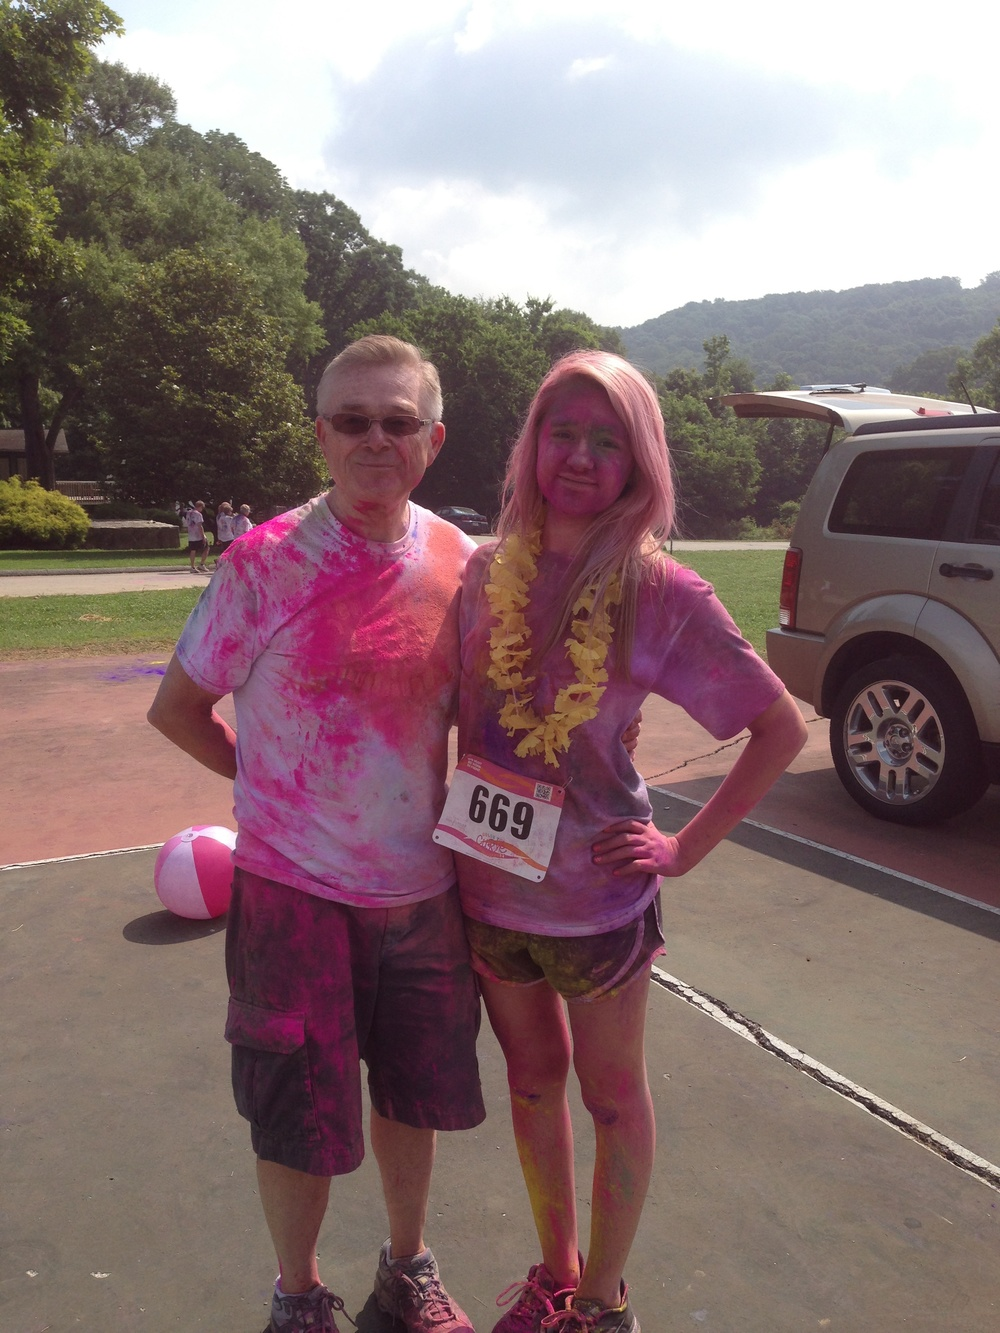 CtC 2013 Kaitlyn and Joe colorful after race.JPG